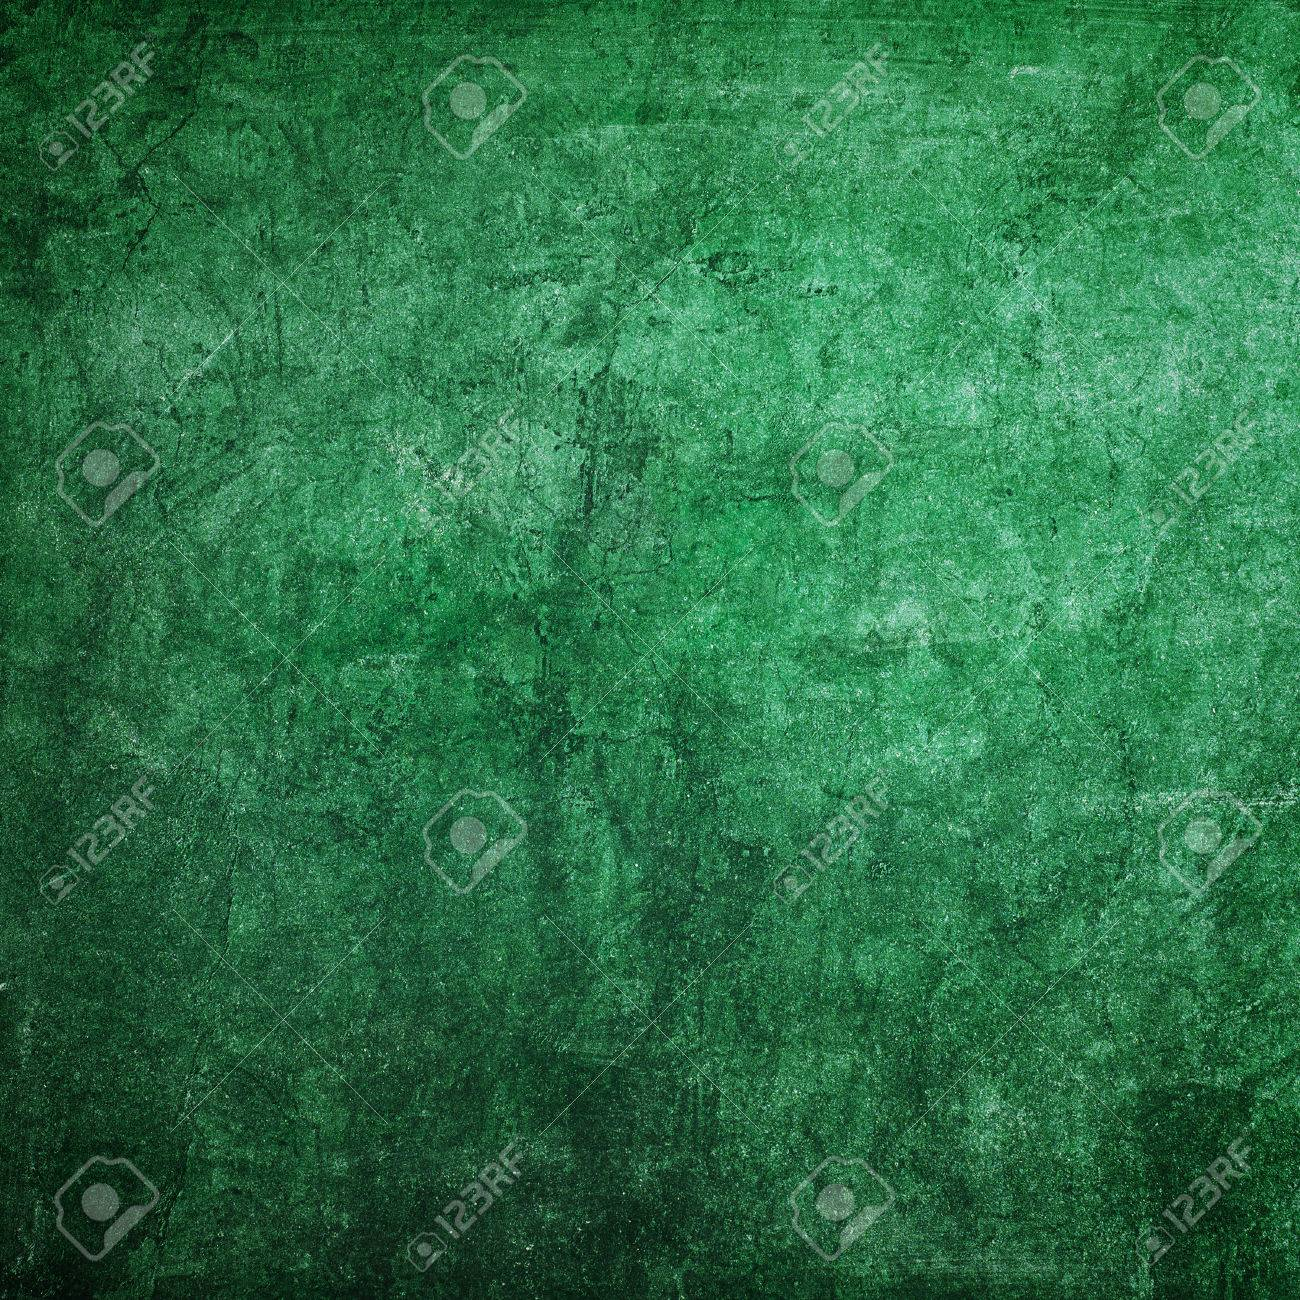 green classroom chalkboard texture as background with copy space stock photo 26346549